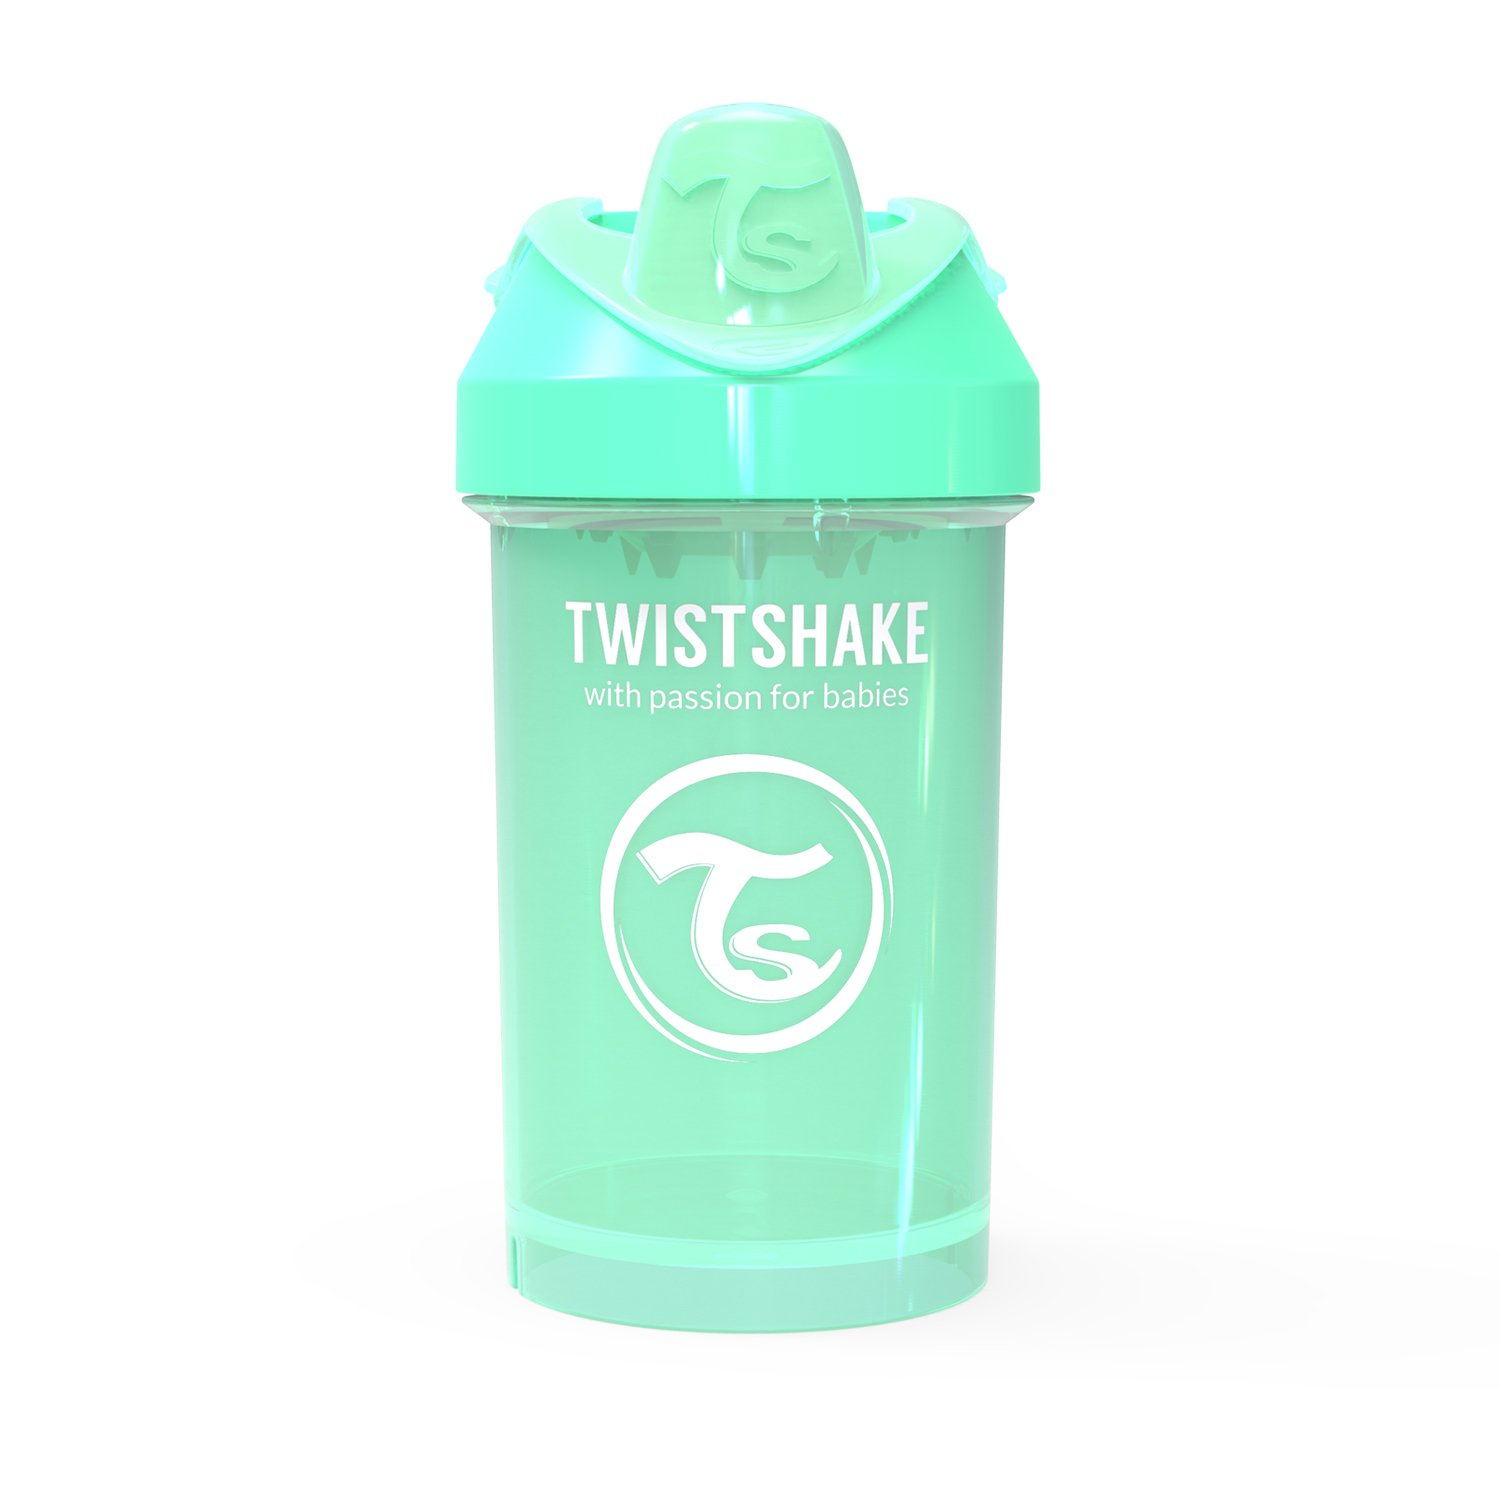 Popular product Twistshake Crawler Cup 300ml Pastel Ranking integrated 1st place 10oz 8+m Green